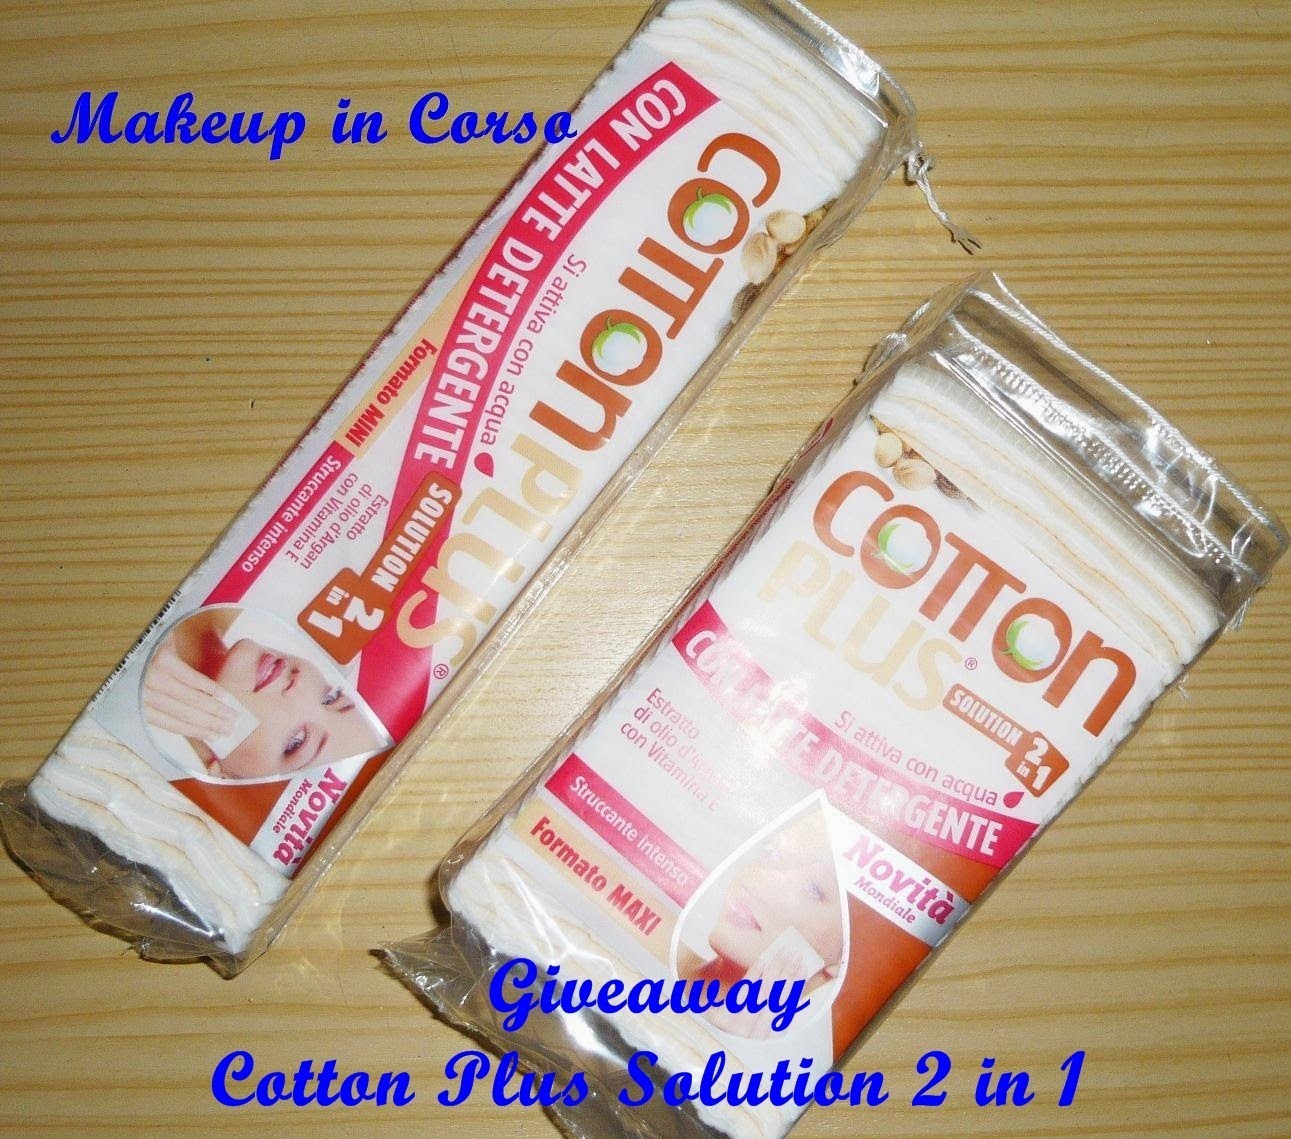 http://makeup-incorso.blogspot.it/2014/03/giveaway-cotton-plus-2-in-1.html?showComment=1395153150583#c8519725964561358997